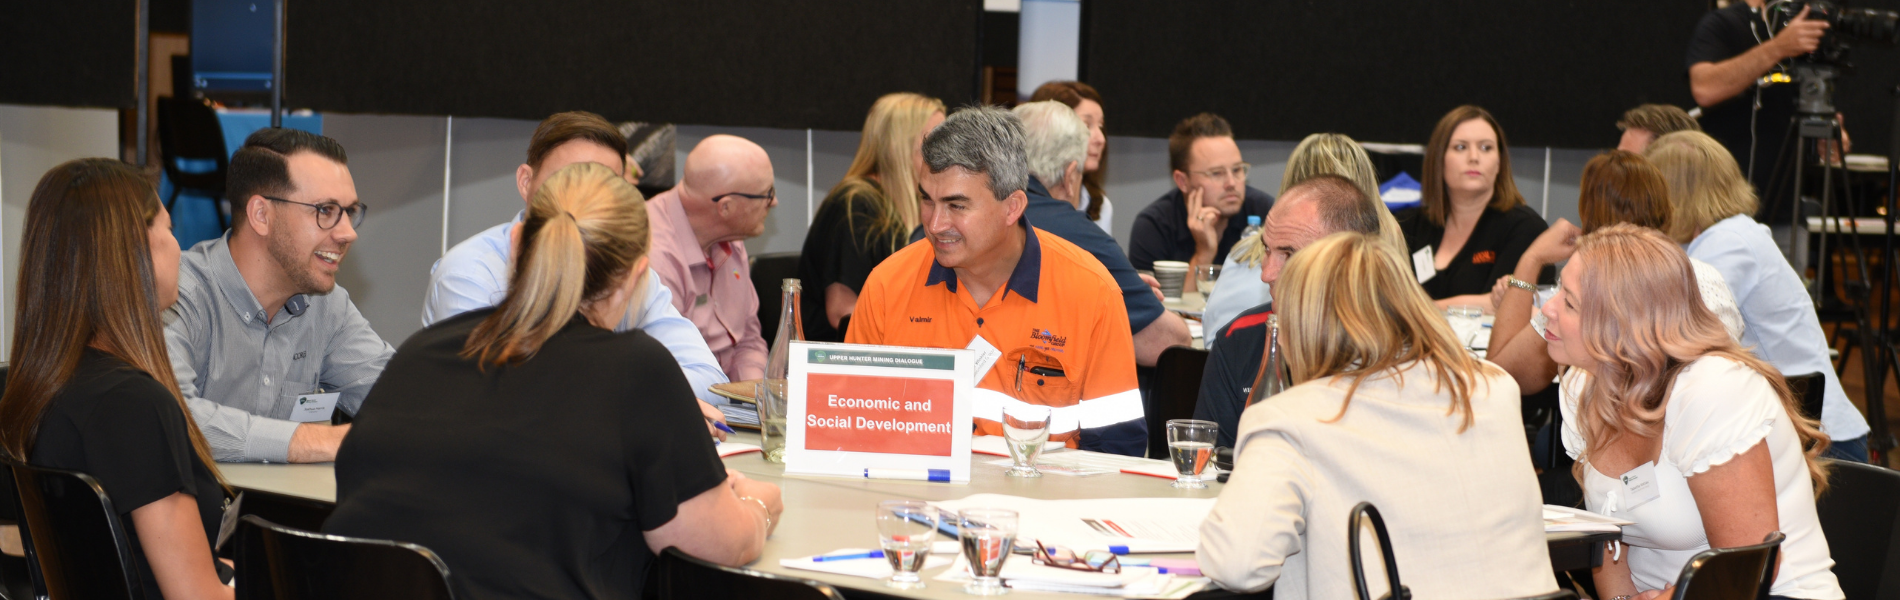 Appetite for mining procurement at Singleton business lunch event